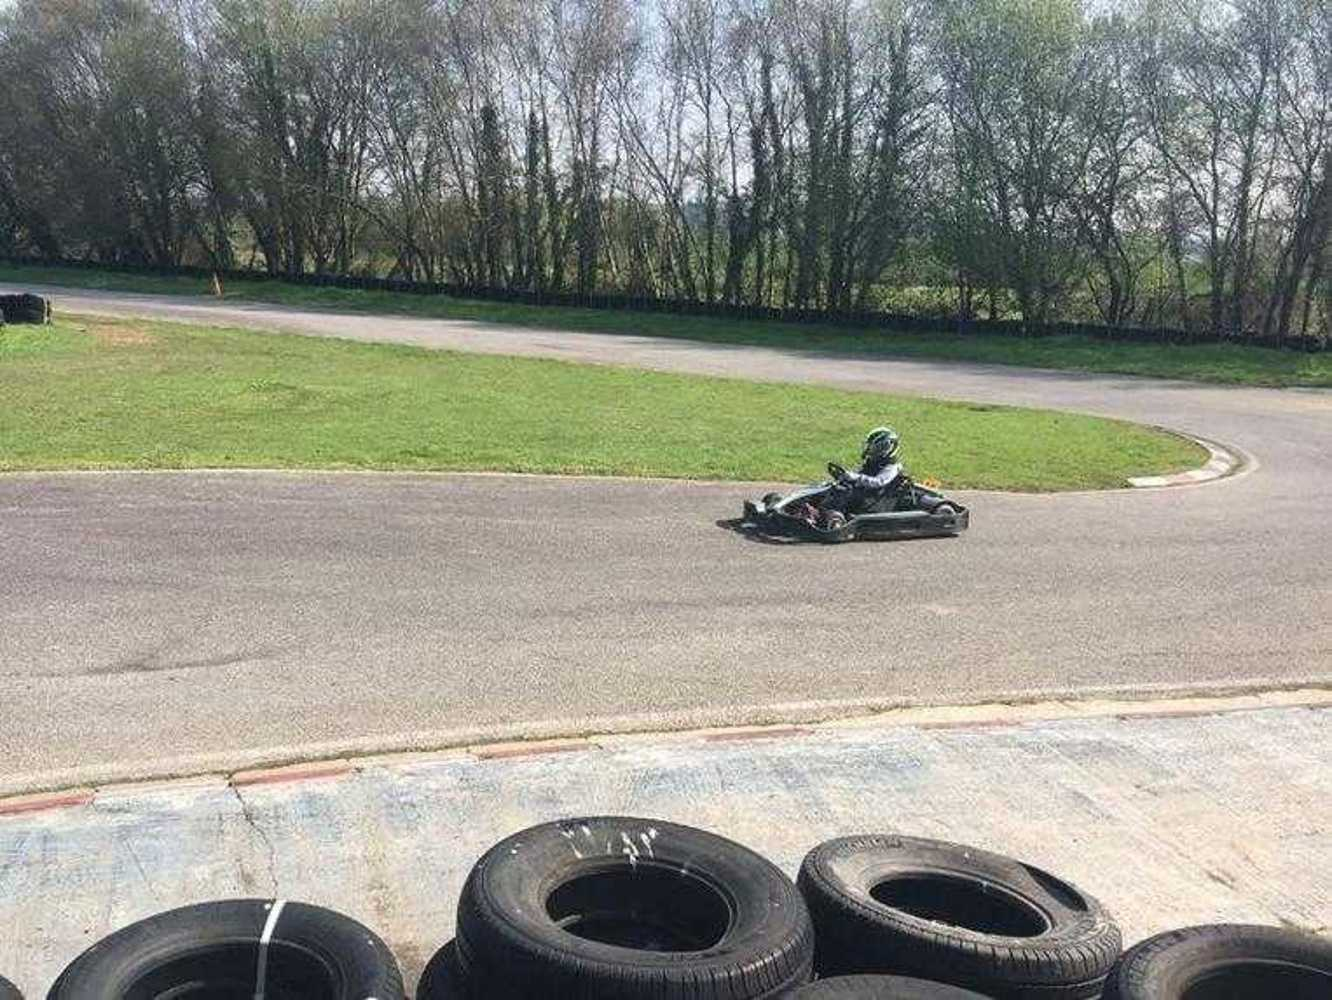 Cap Sports : photos de la sortie karting image10